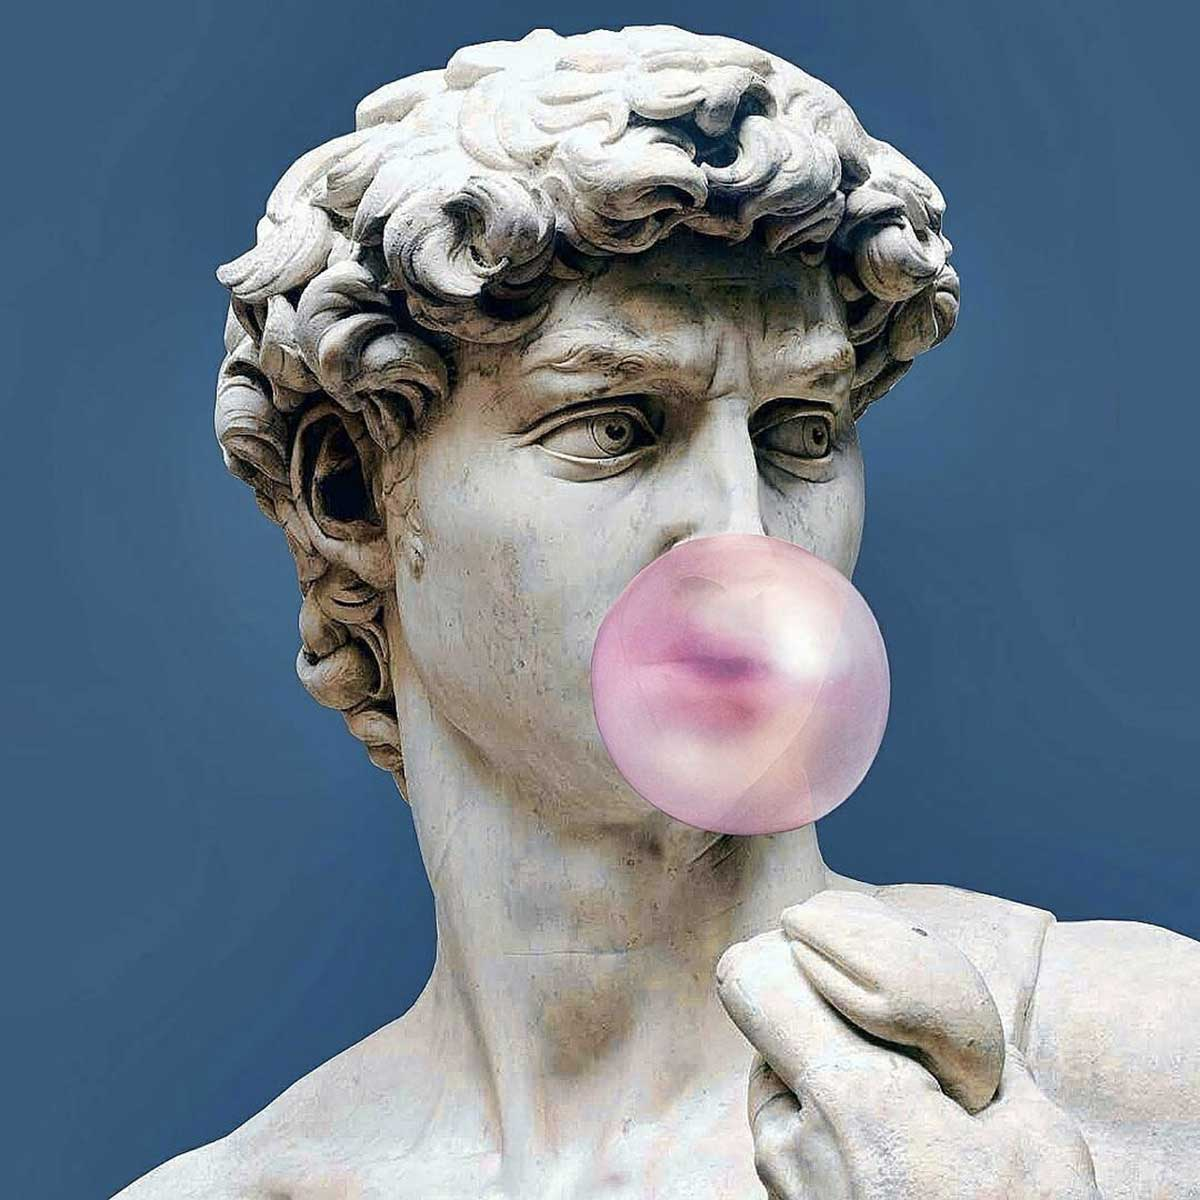 Present Preoccupations of Ancient Statues | Trendland